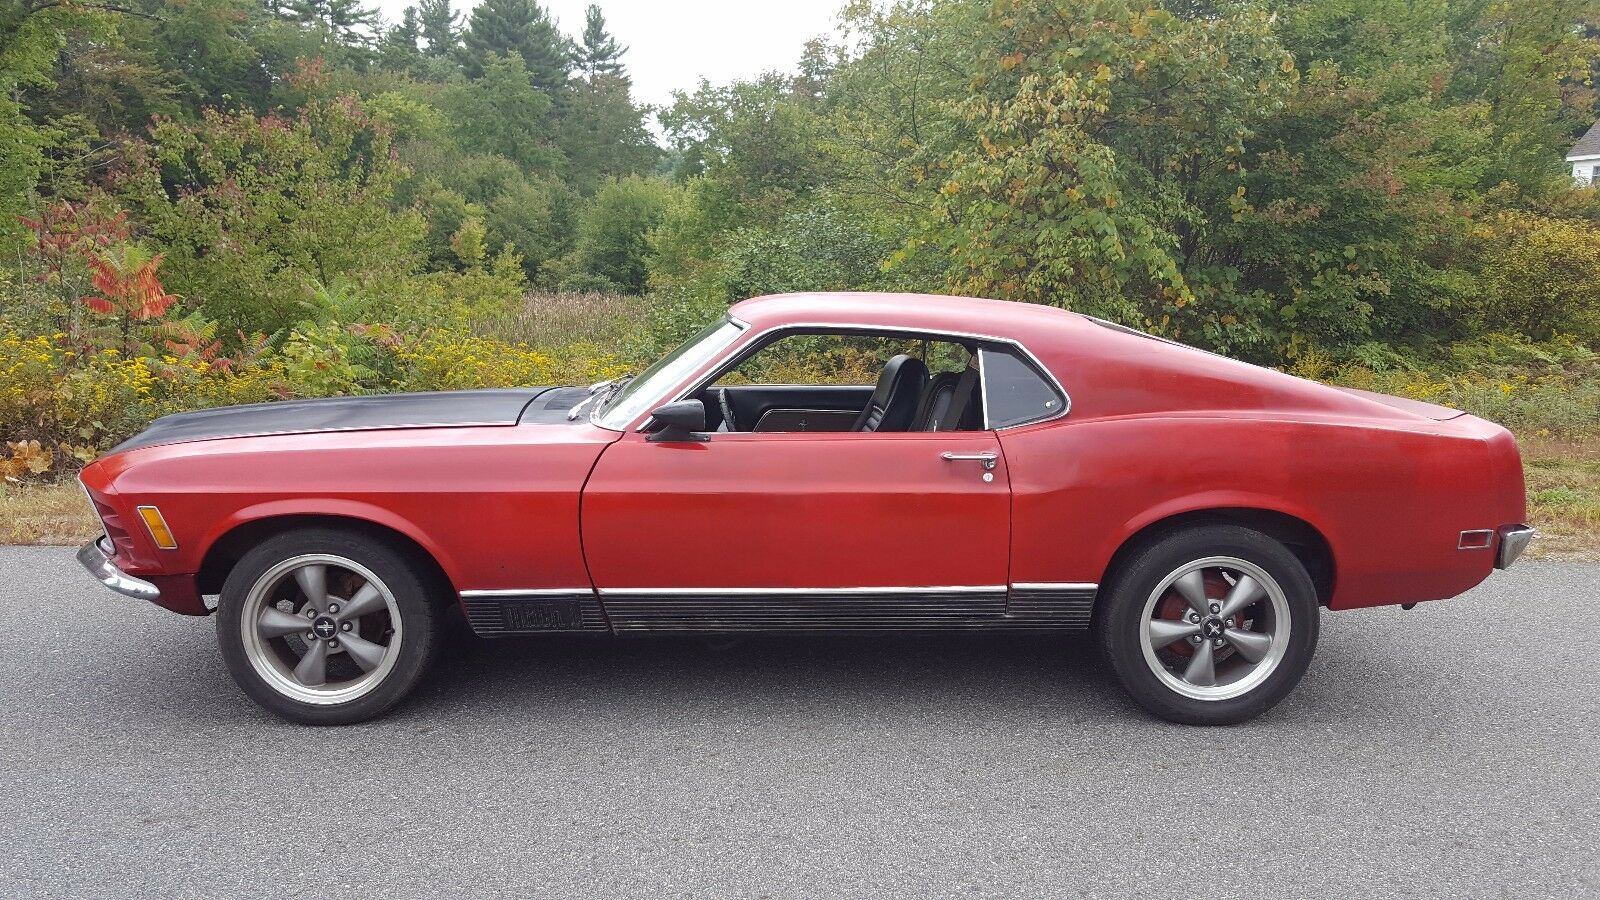 1970 Ford Mustang MACh 1 351 V8 4 speed Manual shift